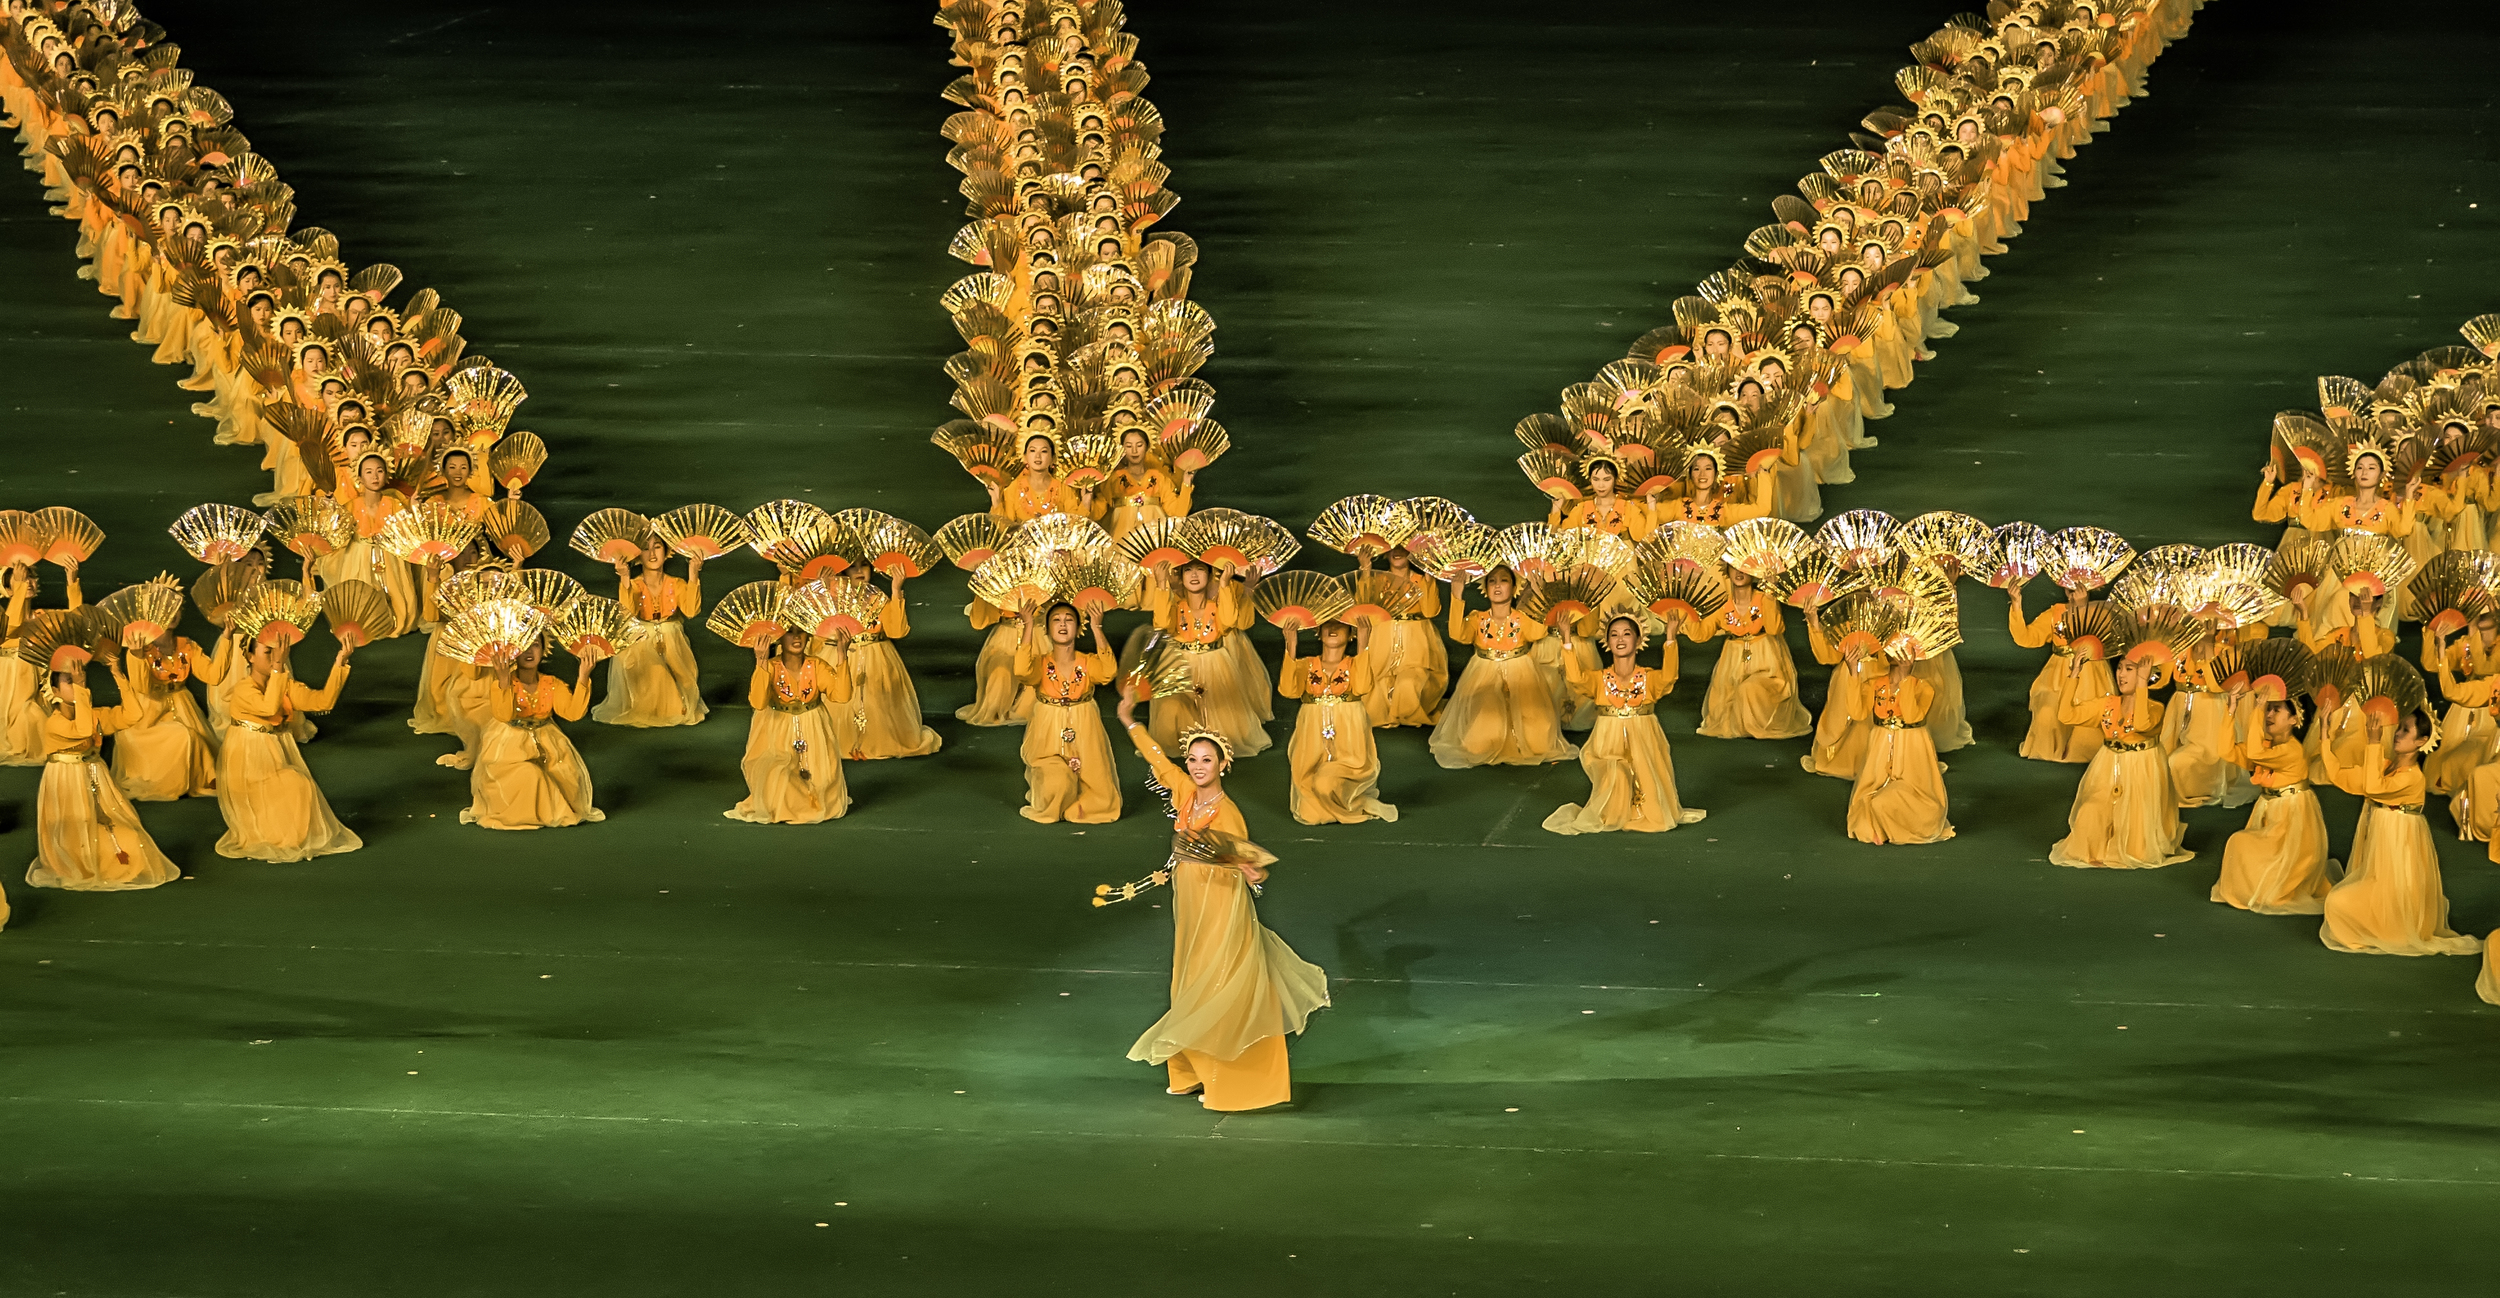 The Golden Fan Dancers of Arirang